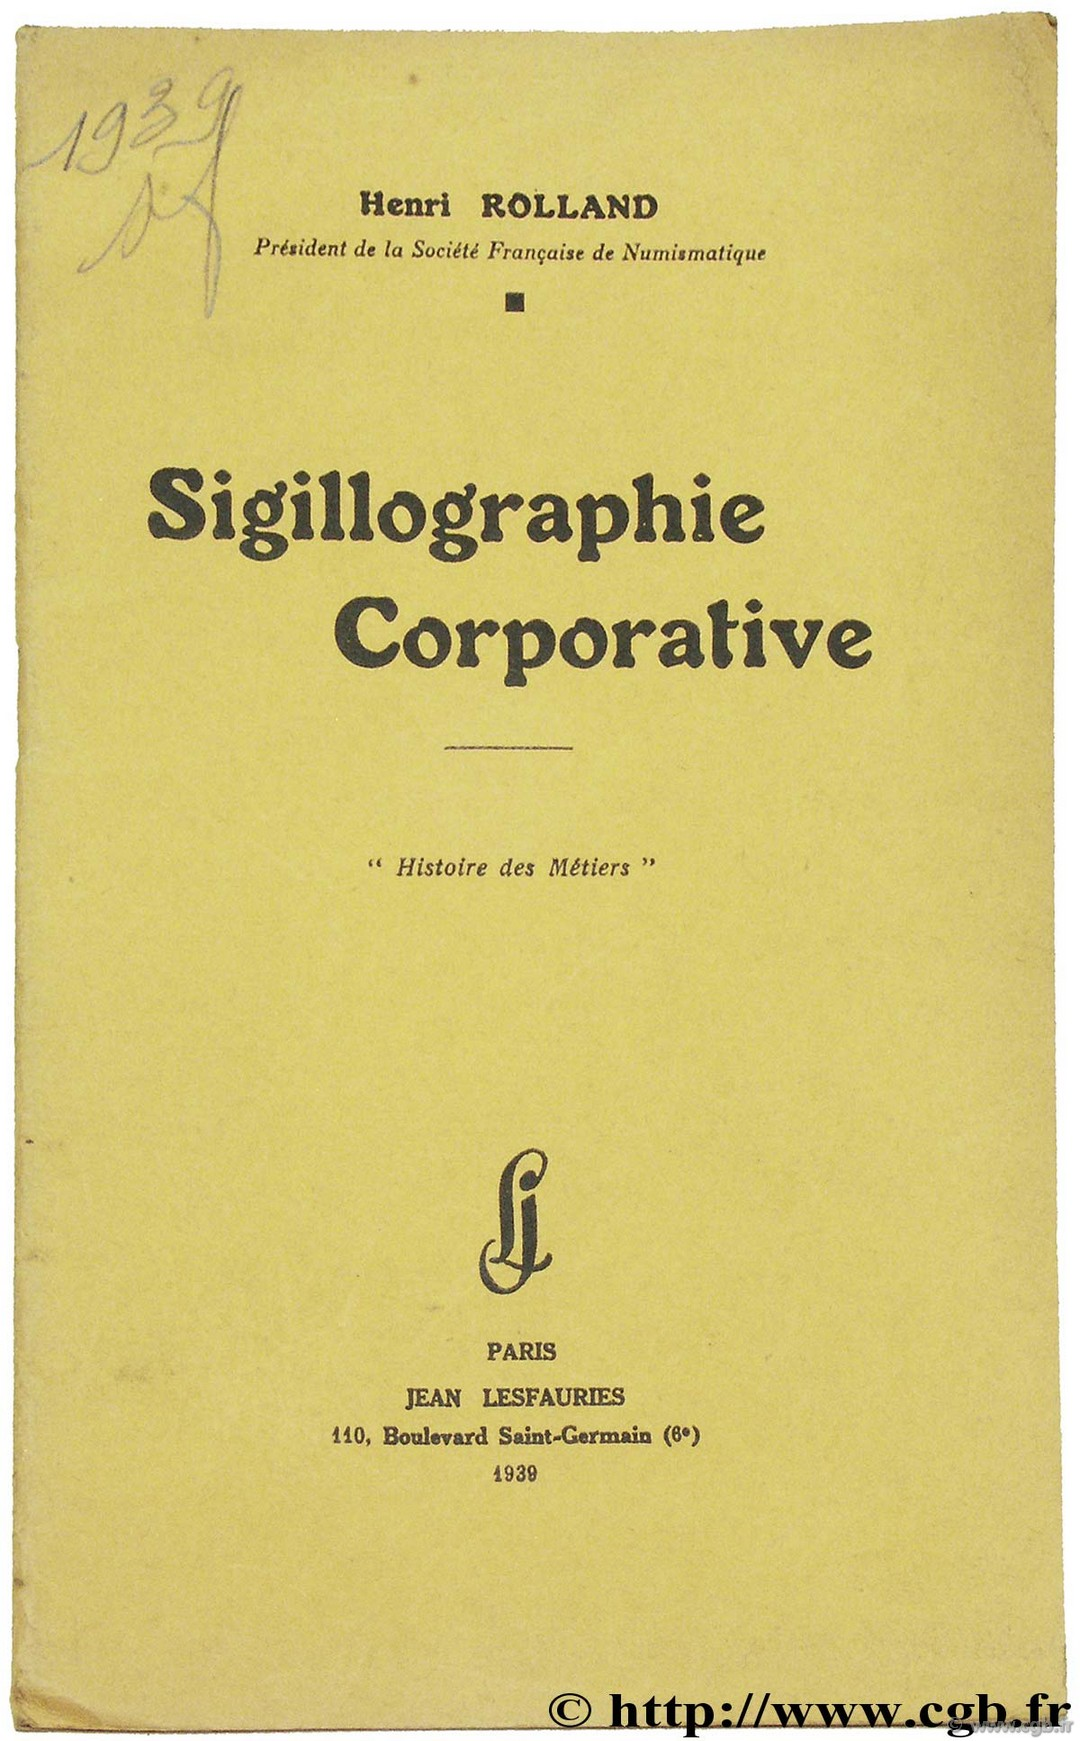 Sigillographie Corporative ROLLAND H.